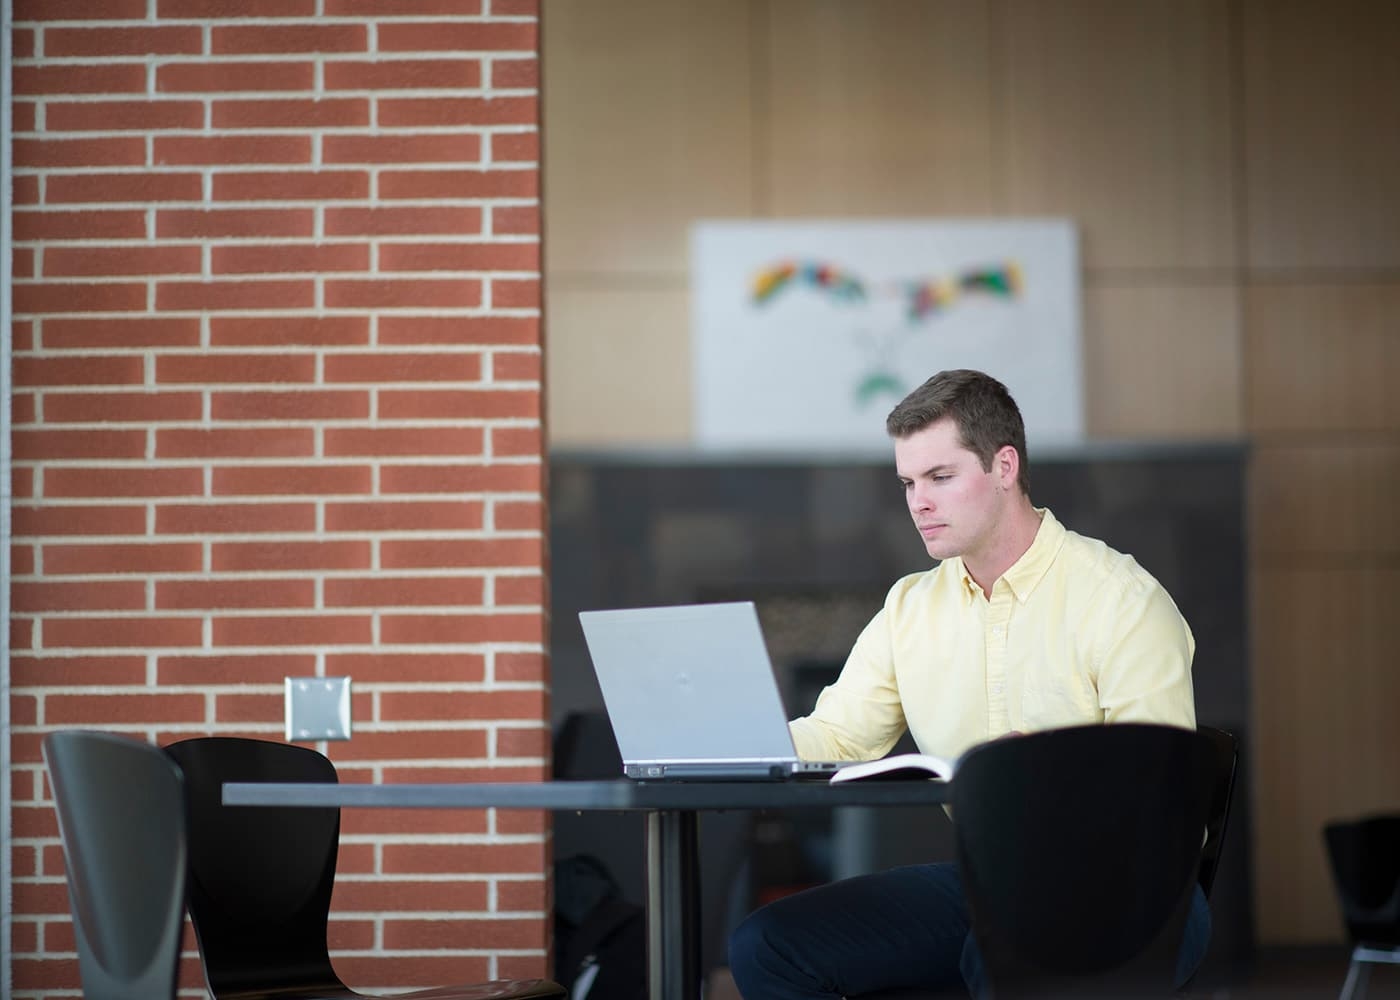 Dordt College student working on a laptop